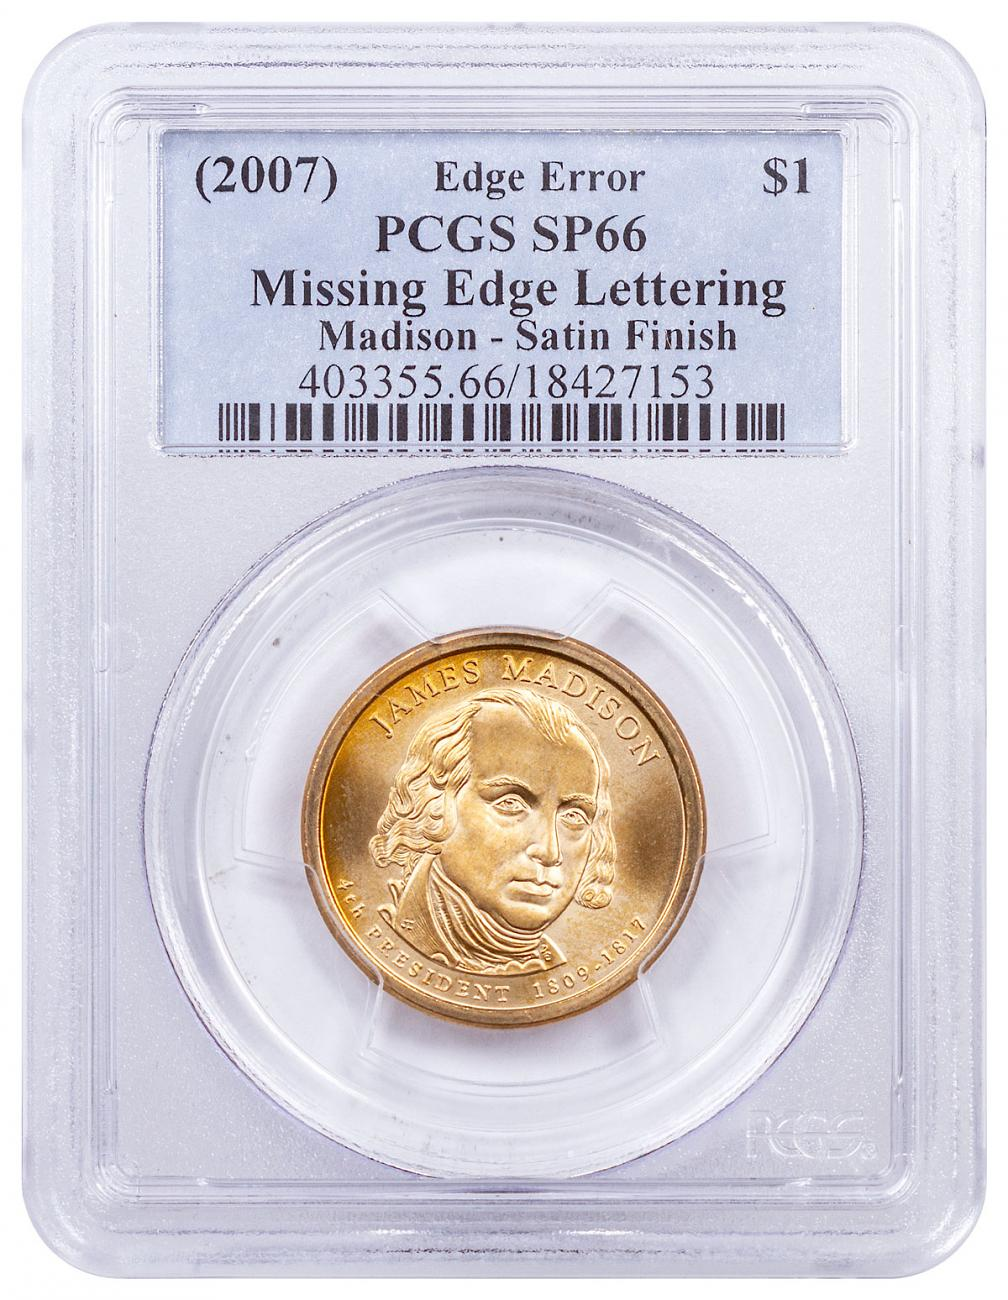 (2007) Mint Error James Madison Presidential $1 Dollar Missing Edge Lettering (Satin Finish) PCGS SP66 Specimen 66